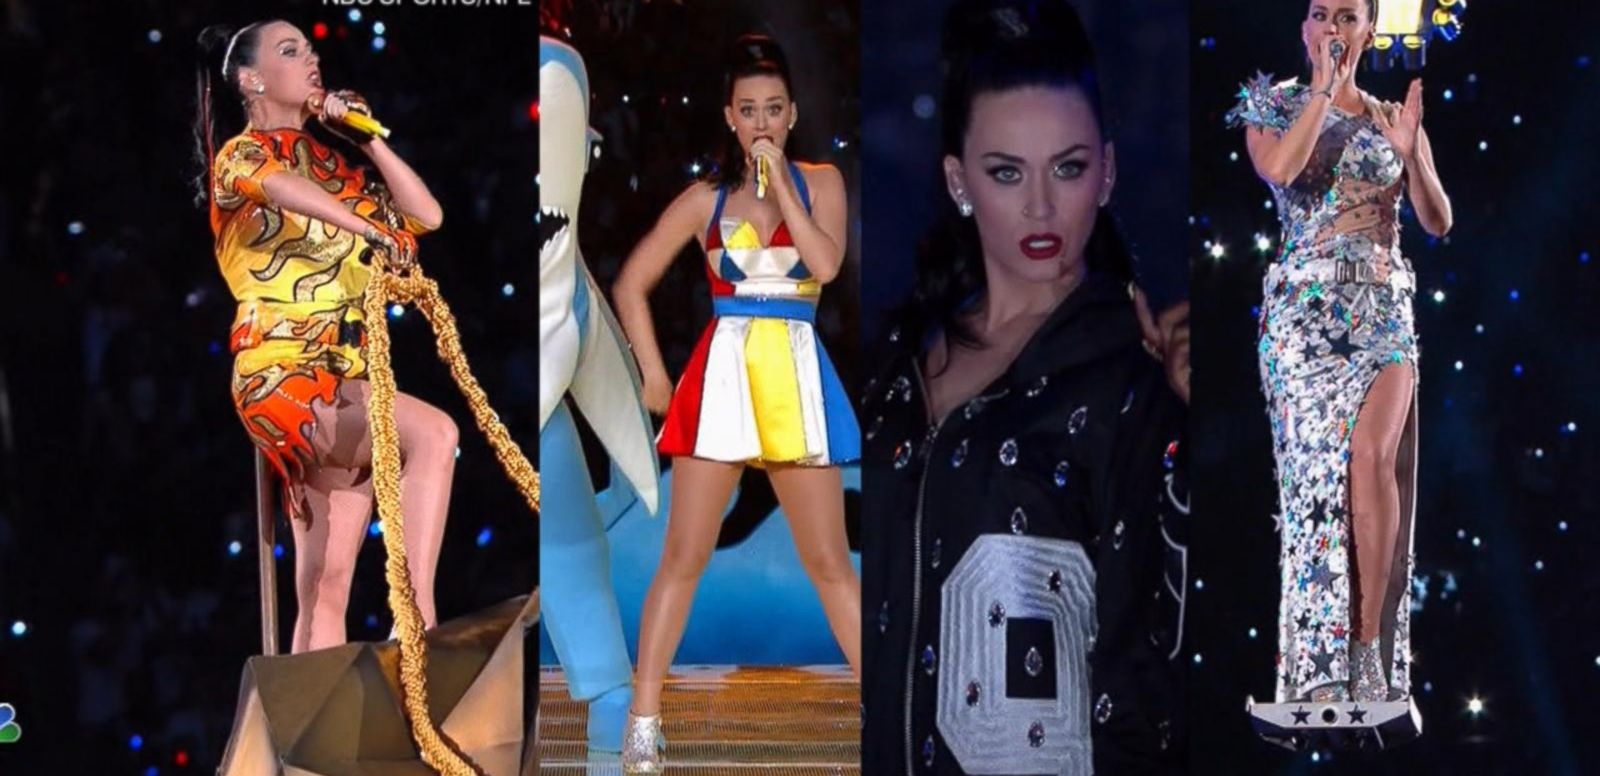 VIDEO: Find Out How Katy Perry Changed Seamlessly at Halftime